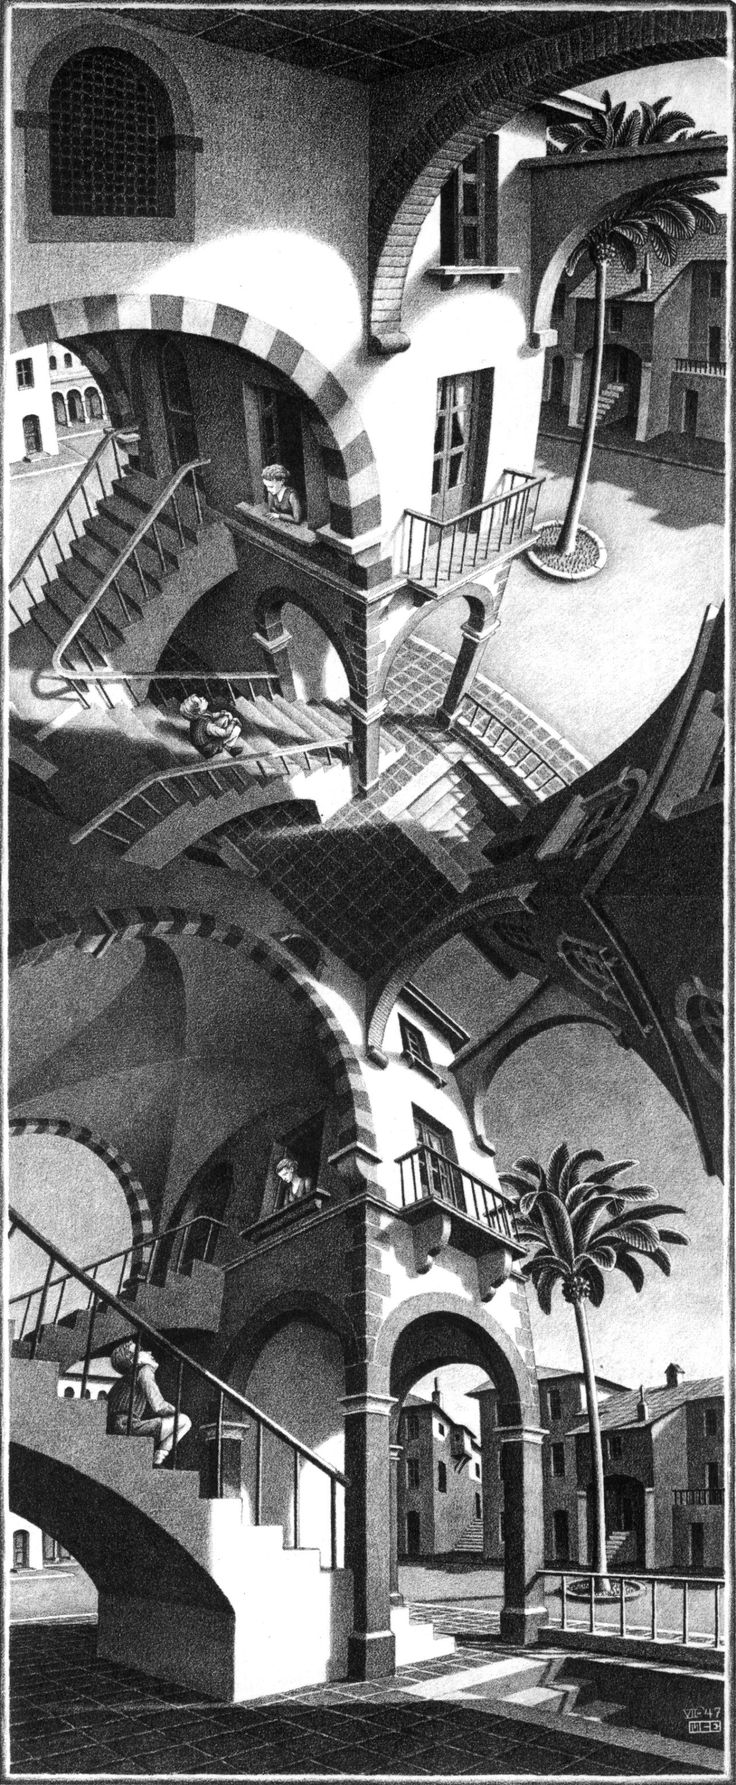 High and Low - M.C. Escher / one of my fave artists!! Love the illusion work